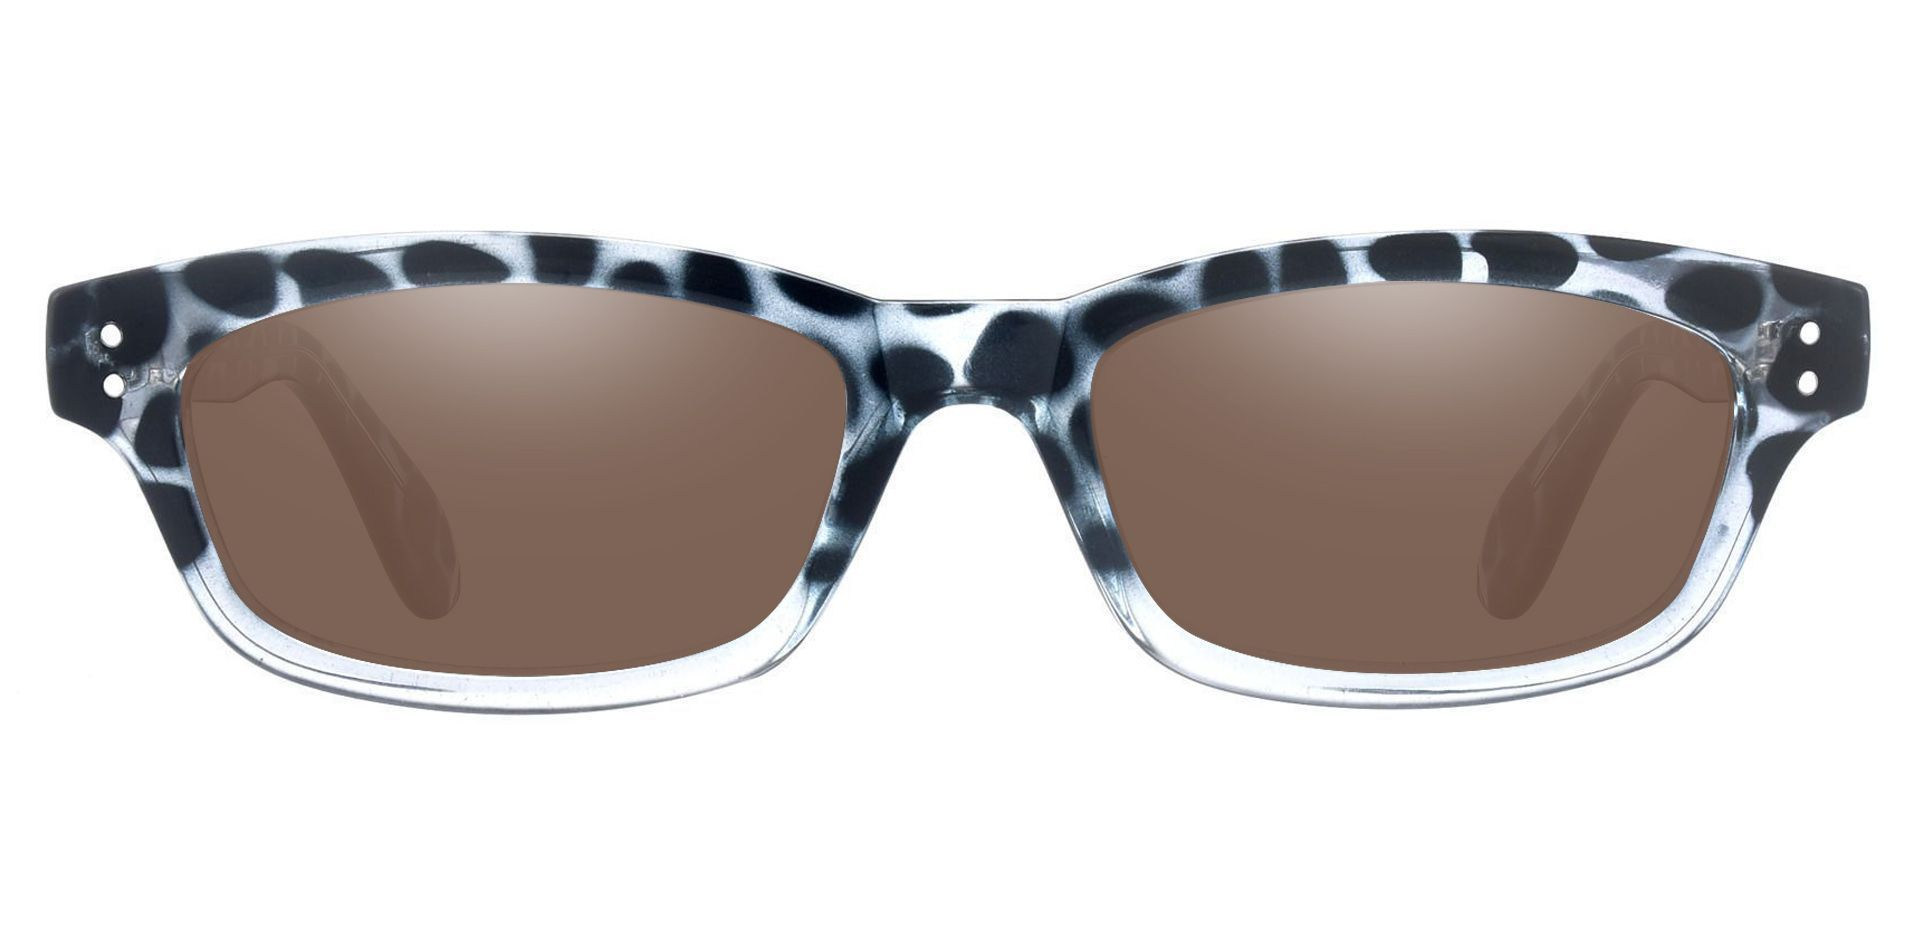 Panthera Rectangle Prescription Sunglasses -  Blue Frame With Brown Lenses